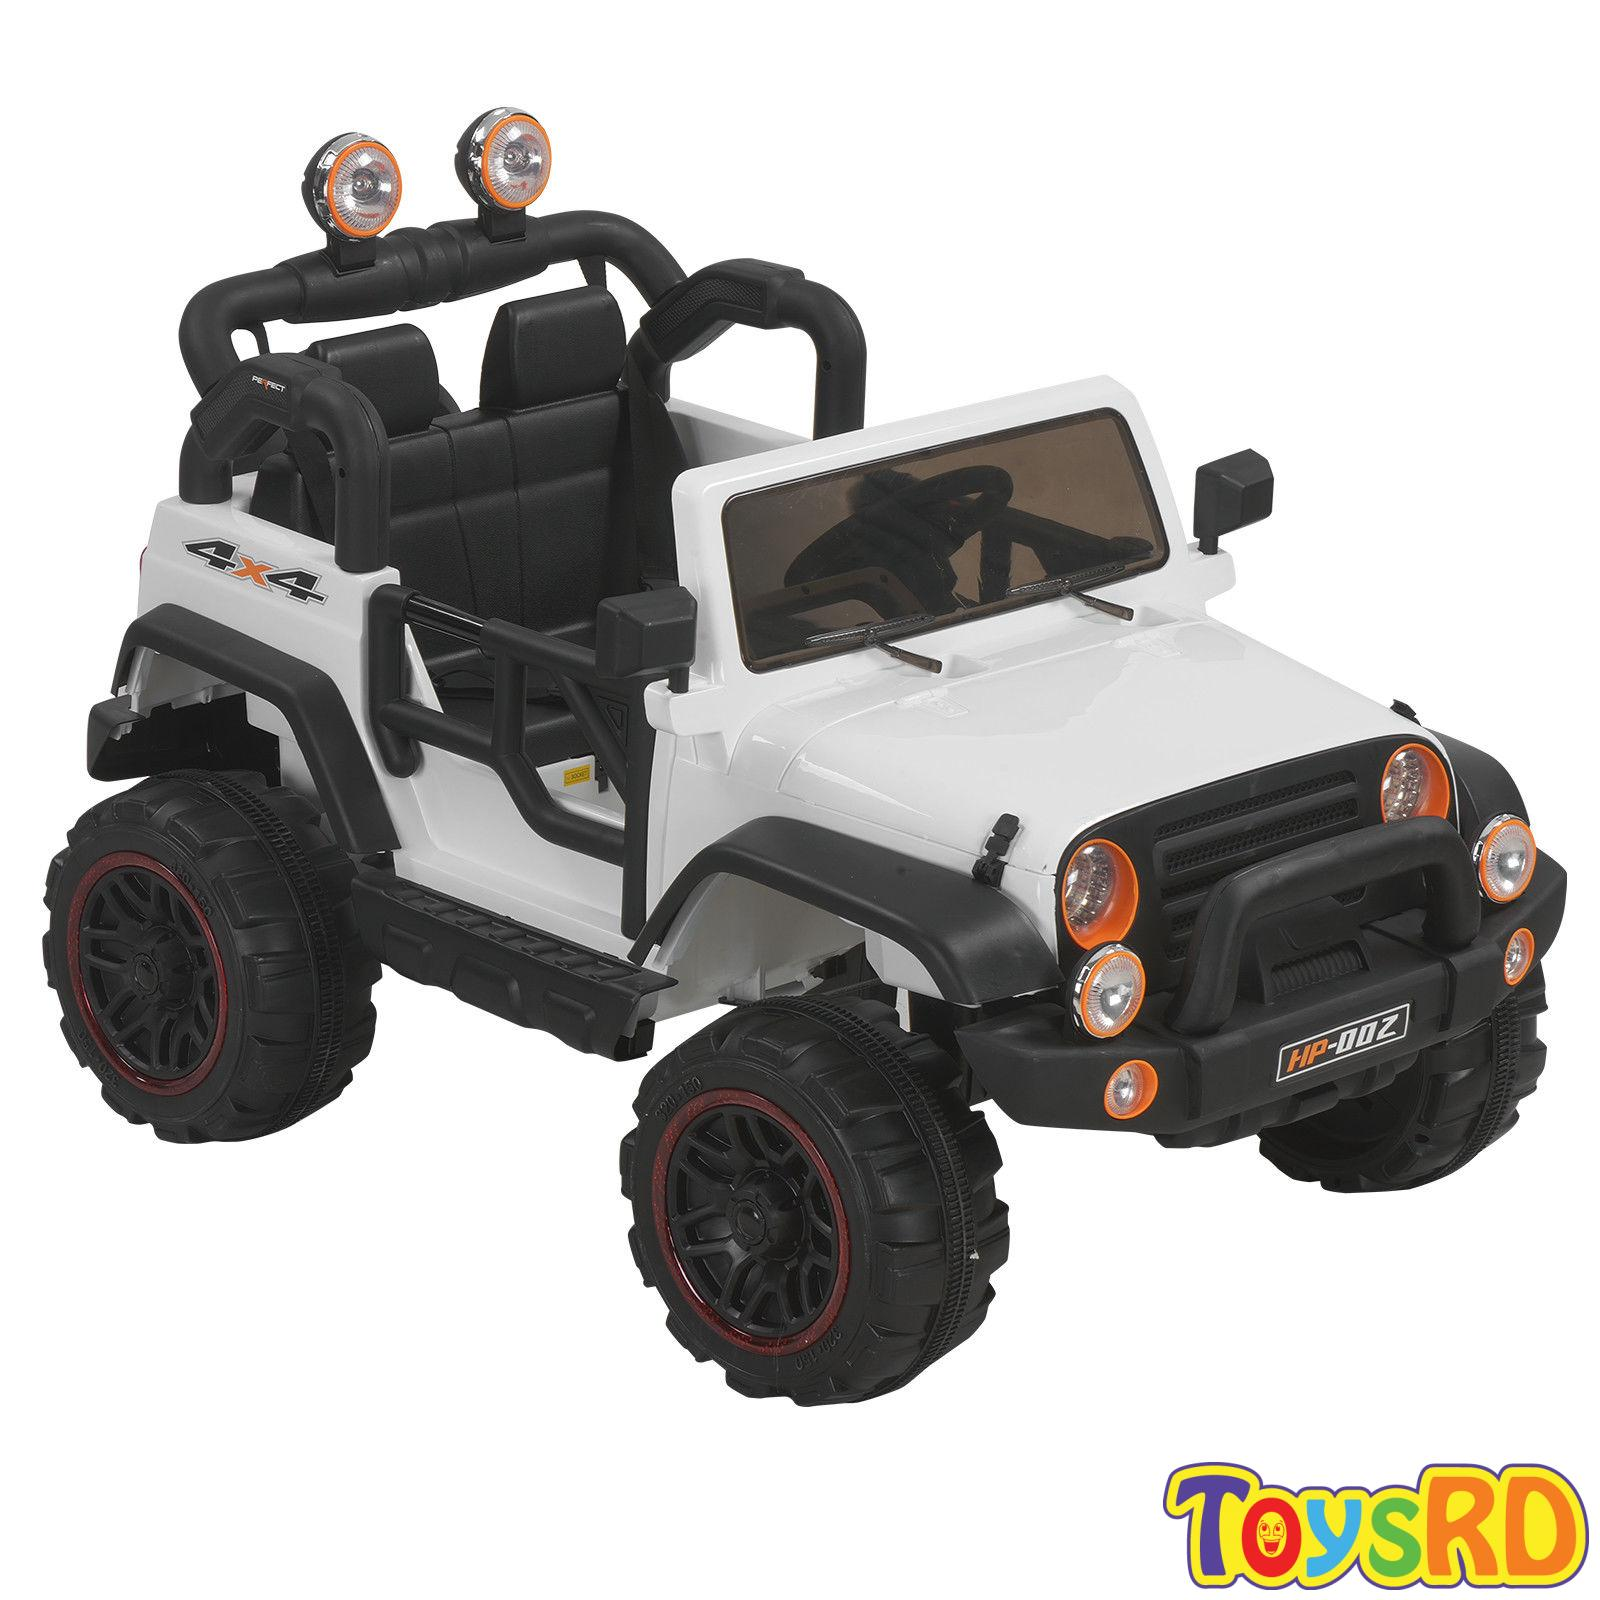 53691a0688b2 Click to enlarge. HomeRIDE ON CARS 12v Kids Ride on Cars Electric Battery  Power Wheels Jeep Toy Car Remote Control